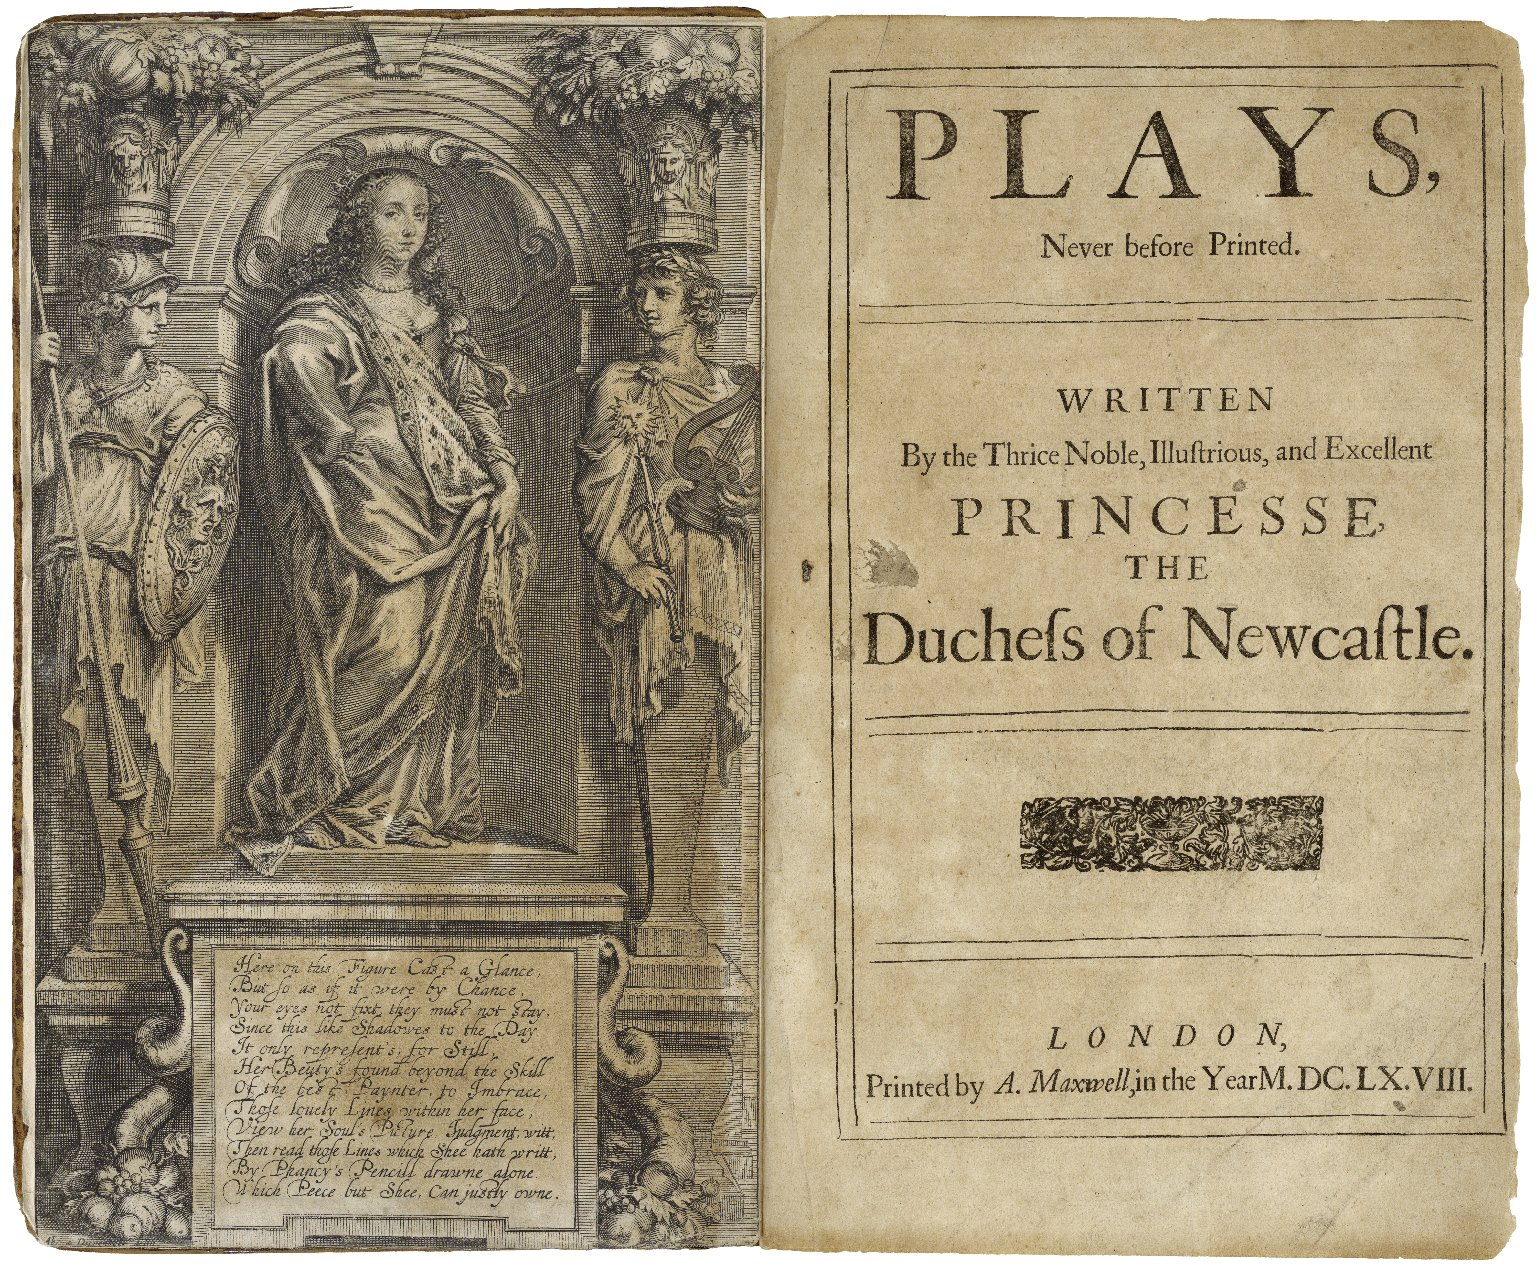 Plays, never before printed. Written by the thrice noble, illustrious, and excellent princesse, the Duchess of Newcastle.